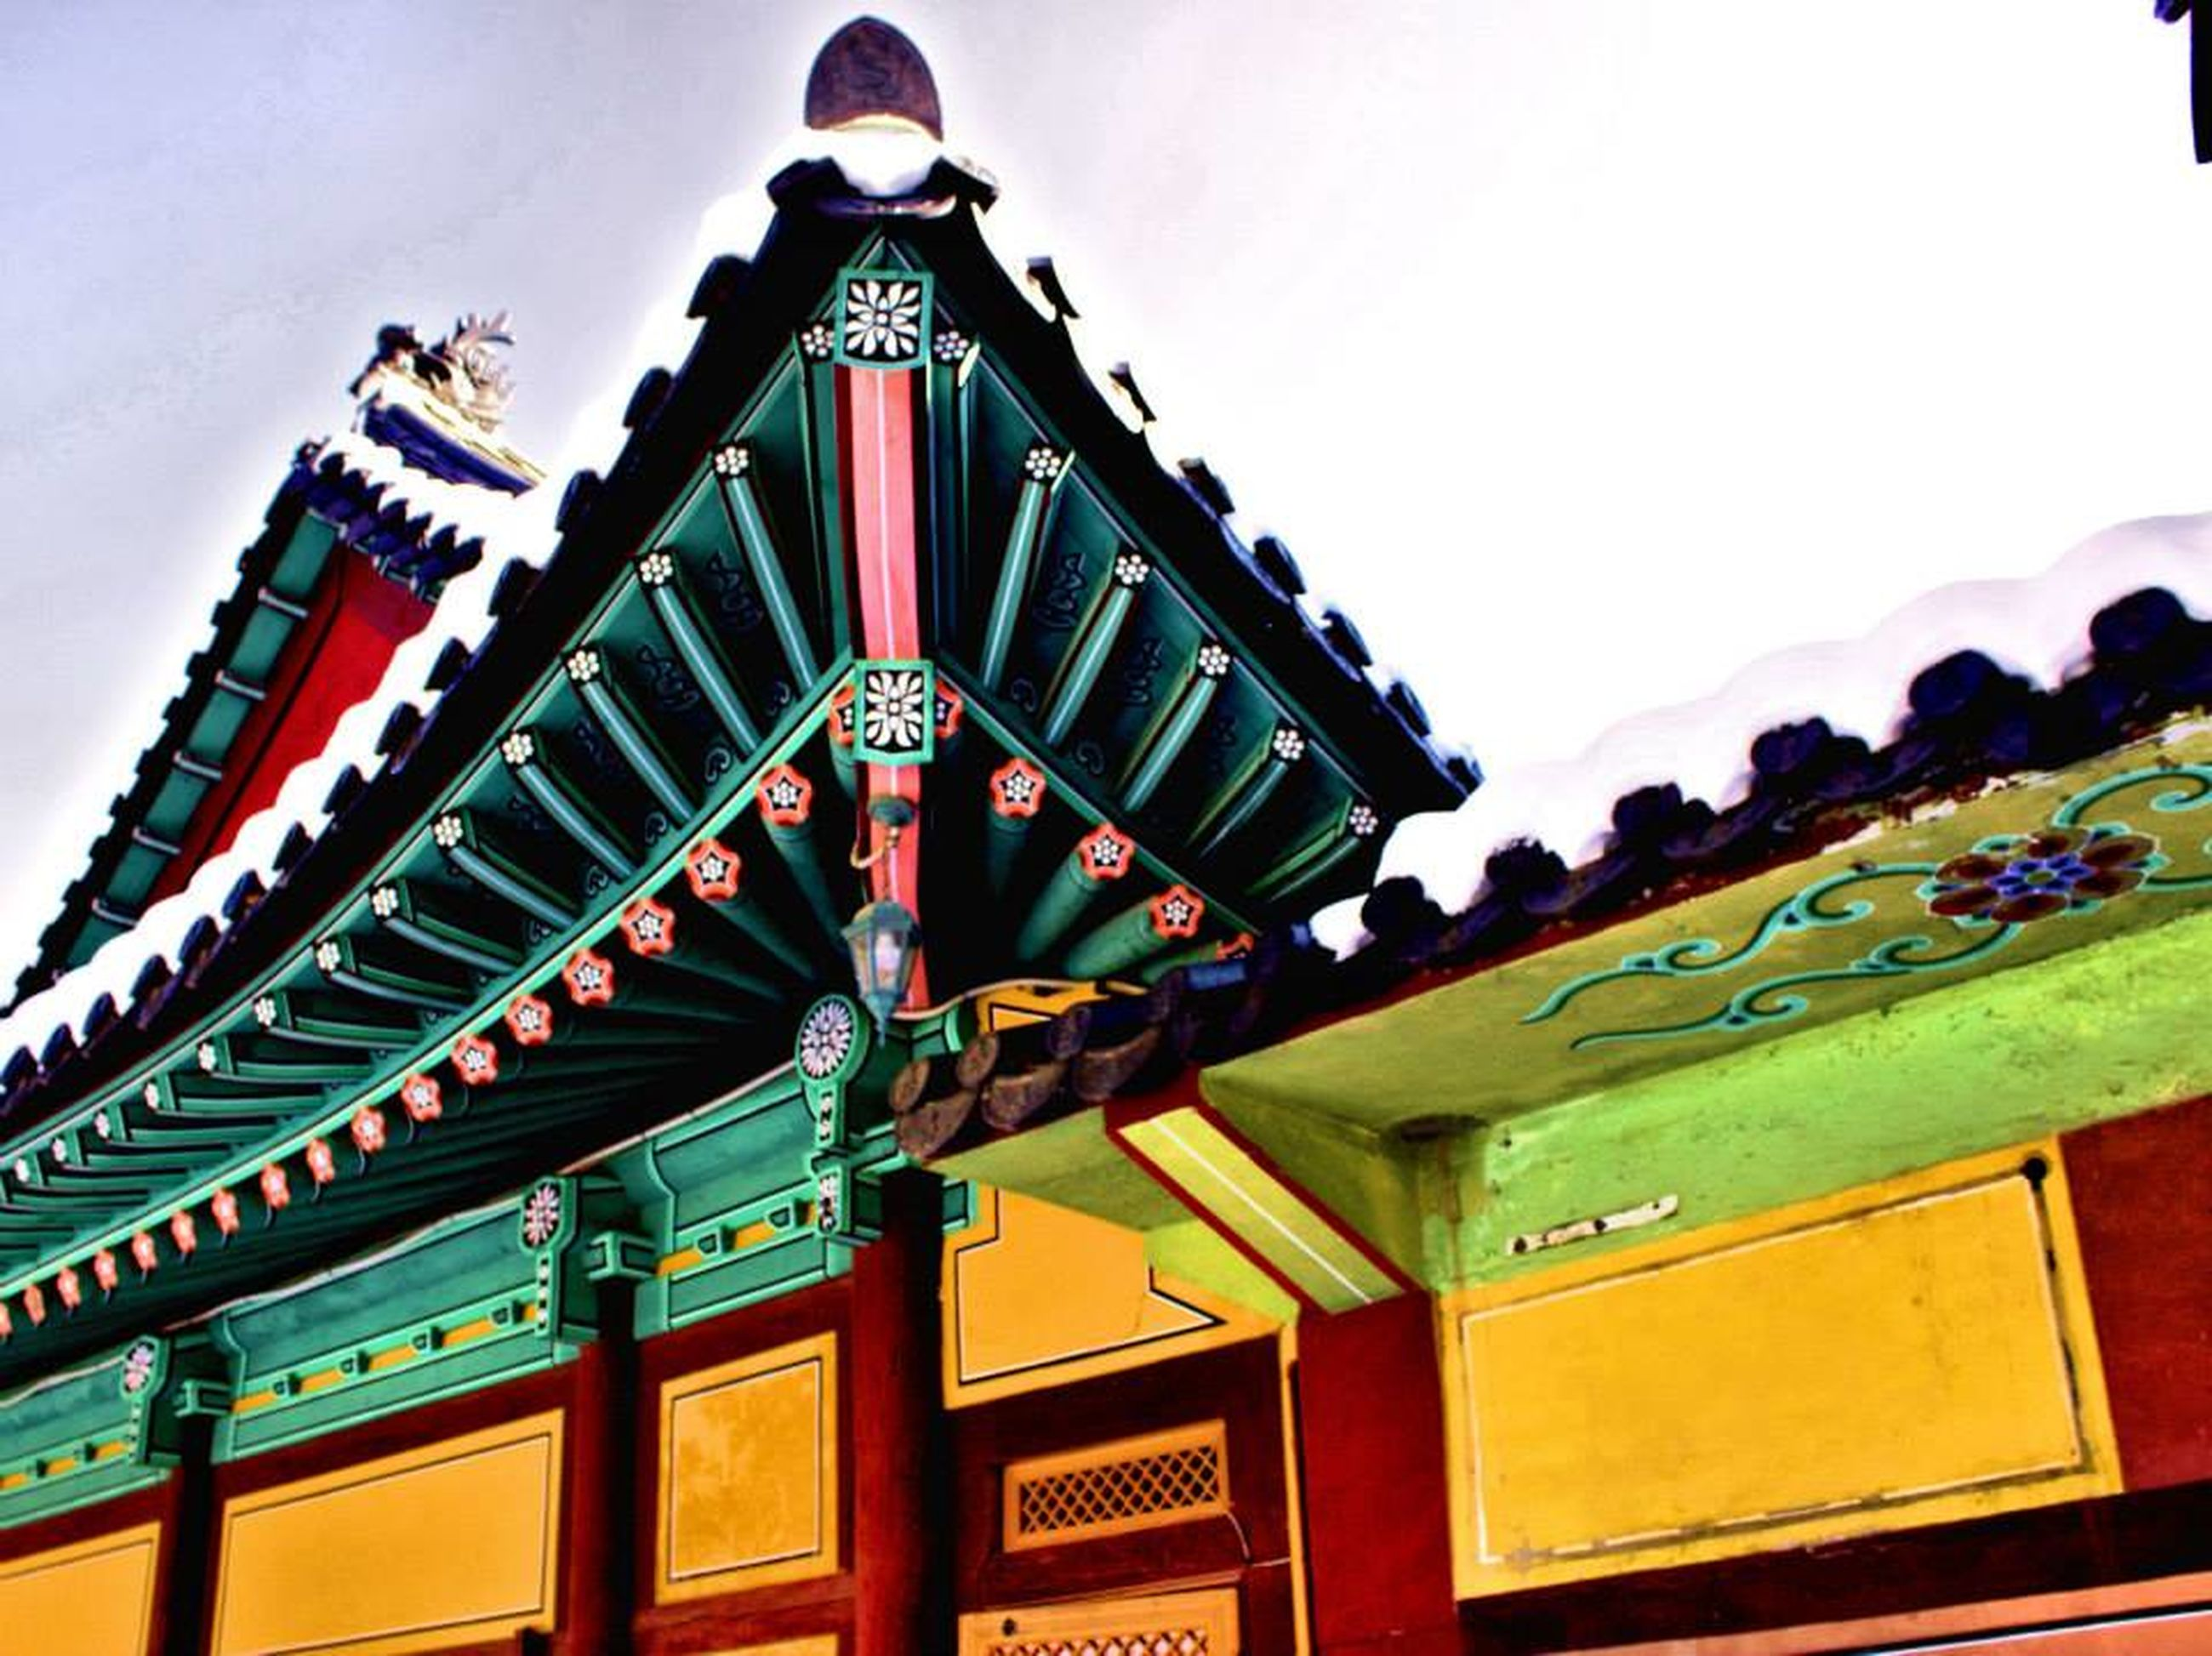 architecture, low angle view, built structure, building exterior, roof, multi colored, clear sky, sky, tradition, building, temple - building, day, no people, balcony, place of worship, outdoors, house, culture, religion, spirituality